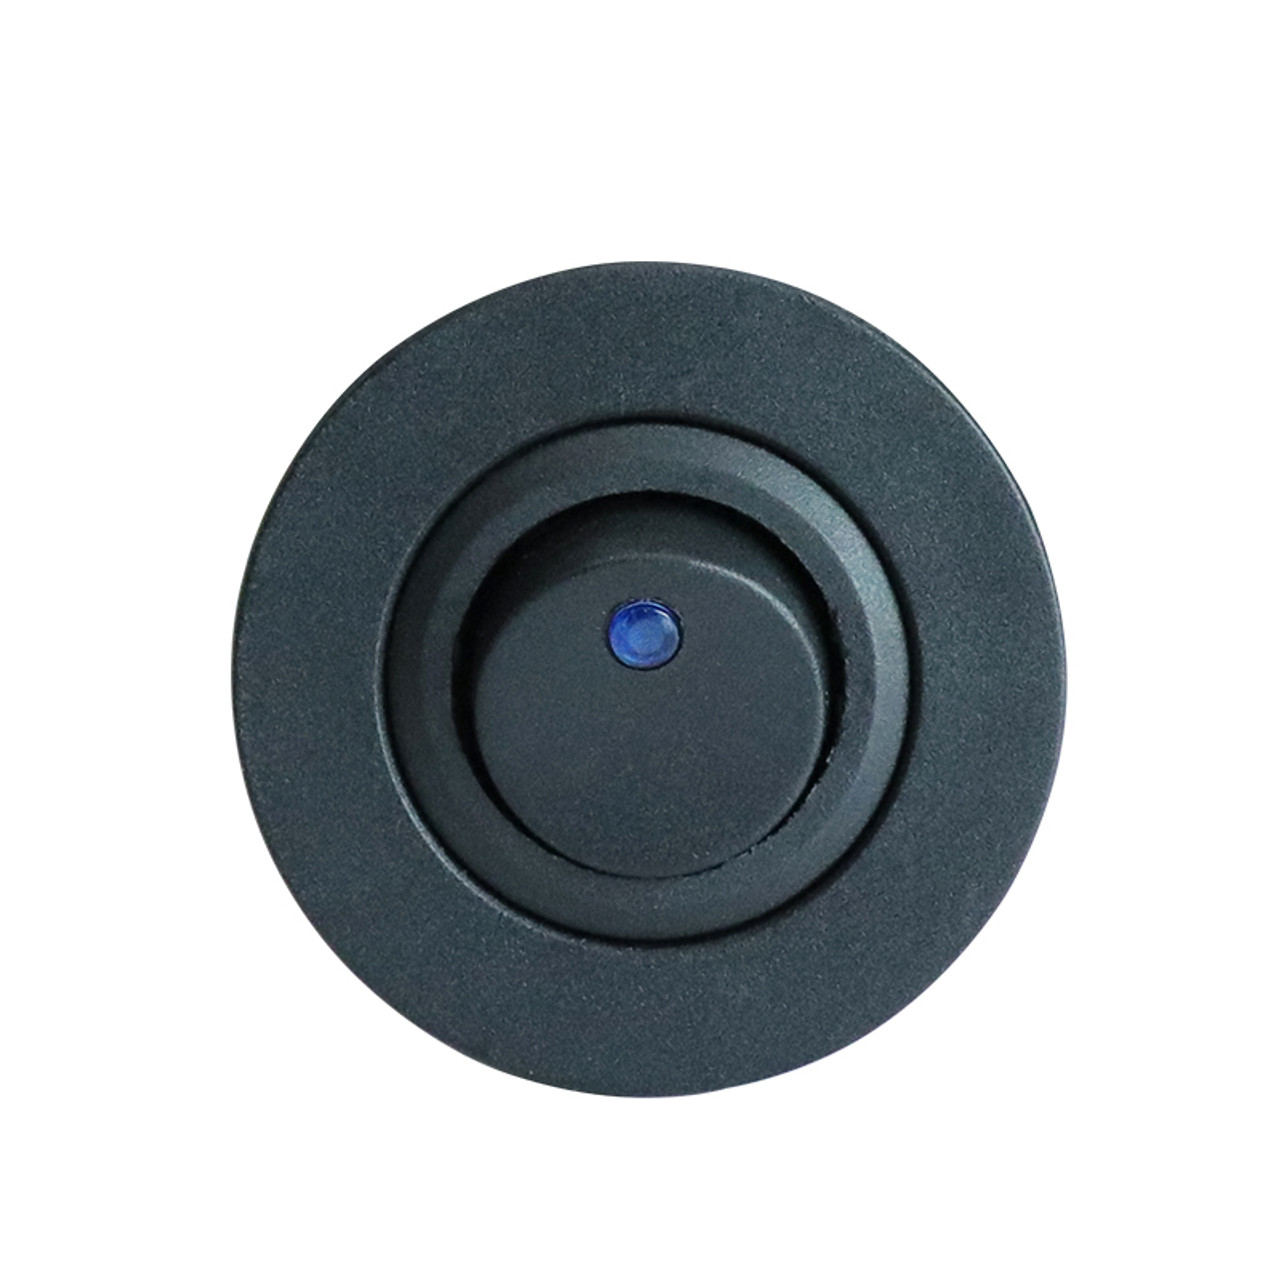 "Panel Mount SPST Switch with Blue Pilot Light, 1-1/8"" hole."